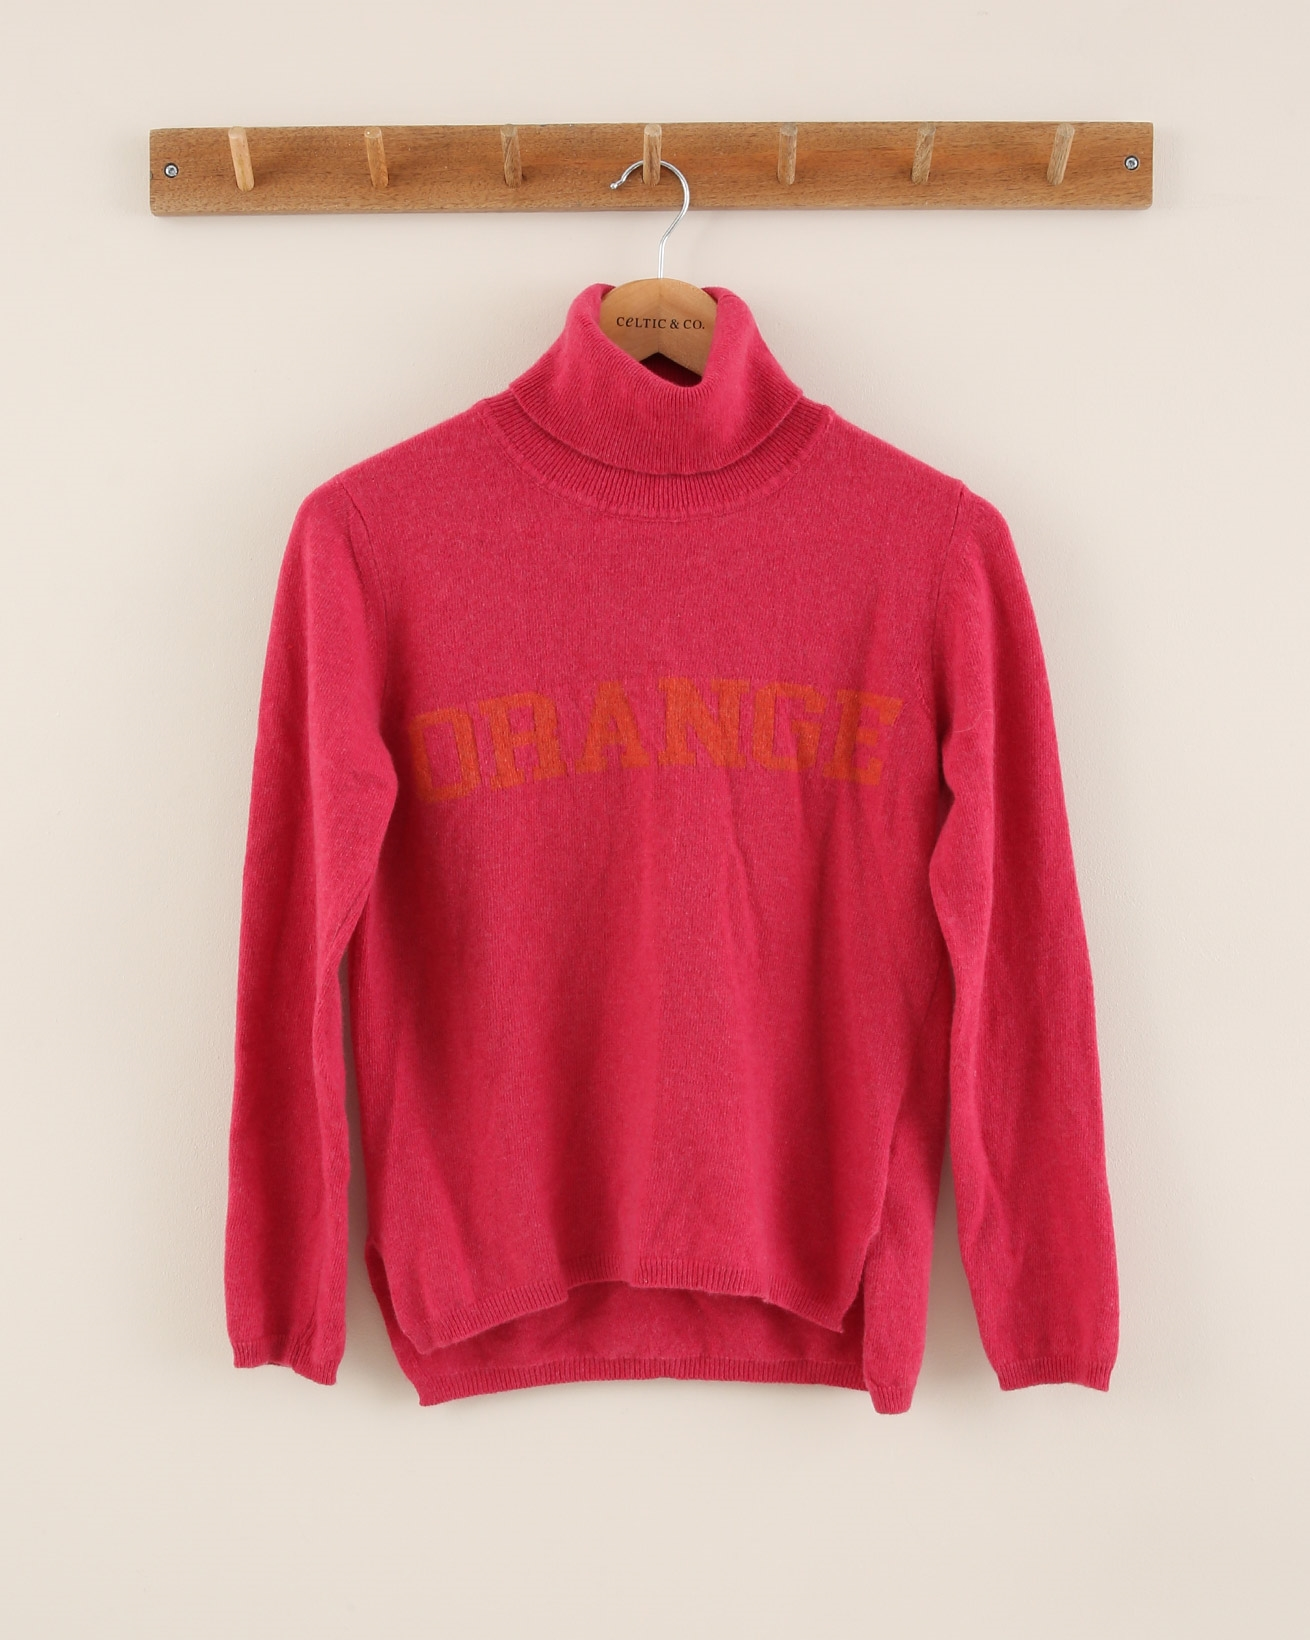 Cashmere Roll Neck Jumper - Size Extra Small - Pink & orange - 1946